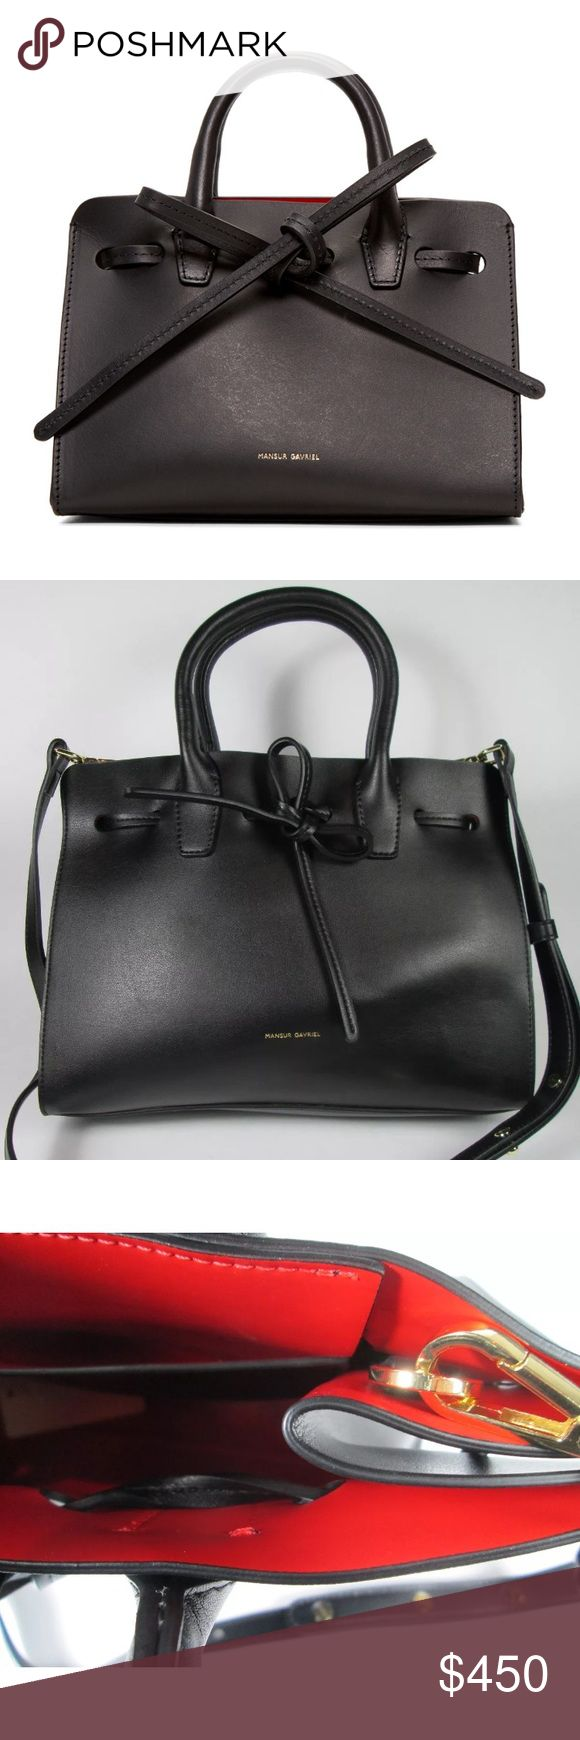 Auth Mansur Gavriel Black Mini Sun Crossbody Bag Authentic Mansur Gavriel Black/Flamma Mini Sun Crossbody Bag. Vegetable-tanned leather tote. Twin rolled carry handles. Detachable and adjustable shoulder strap with lanyard clasp fastening. Logo stamp in gold-tone at face. Self-tie drawstring at throat. Patch pocket at interior. Leather interior in 'flamma' red. Gold-tone hardware. Tonal stitching. Appx. 29 cm L x 23 H x 13 W x 117-121 Strap Drop. Made in Italy. Gently used with only light…